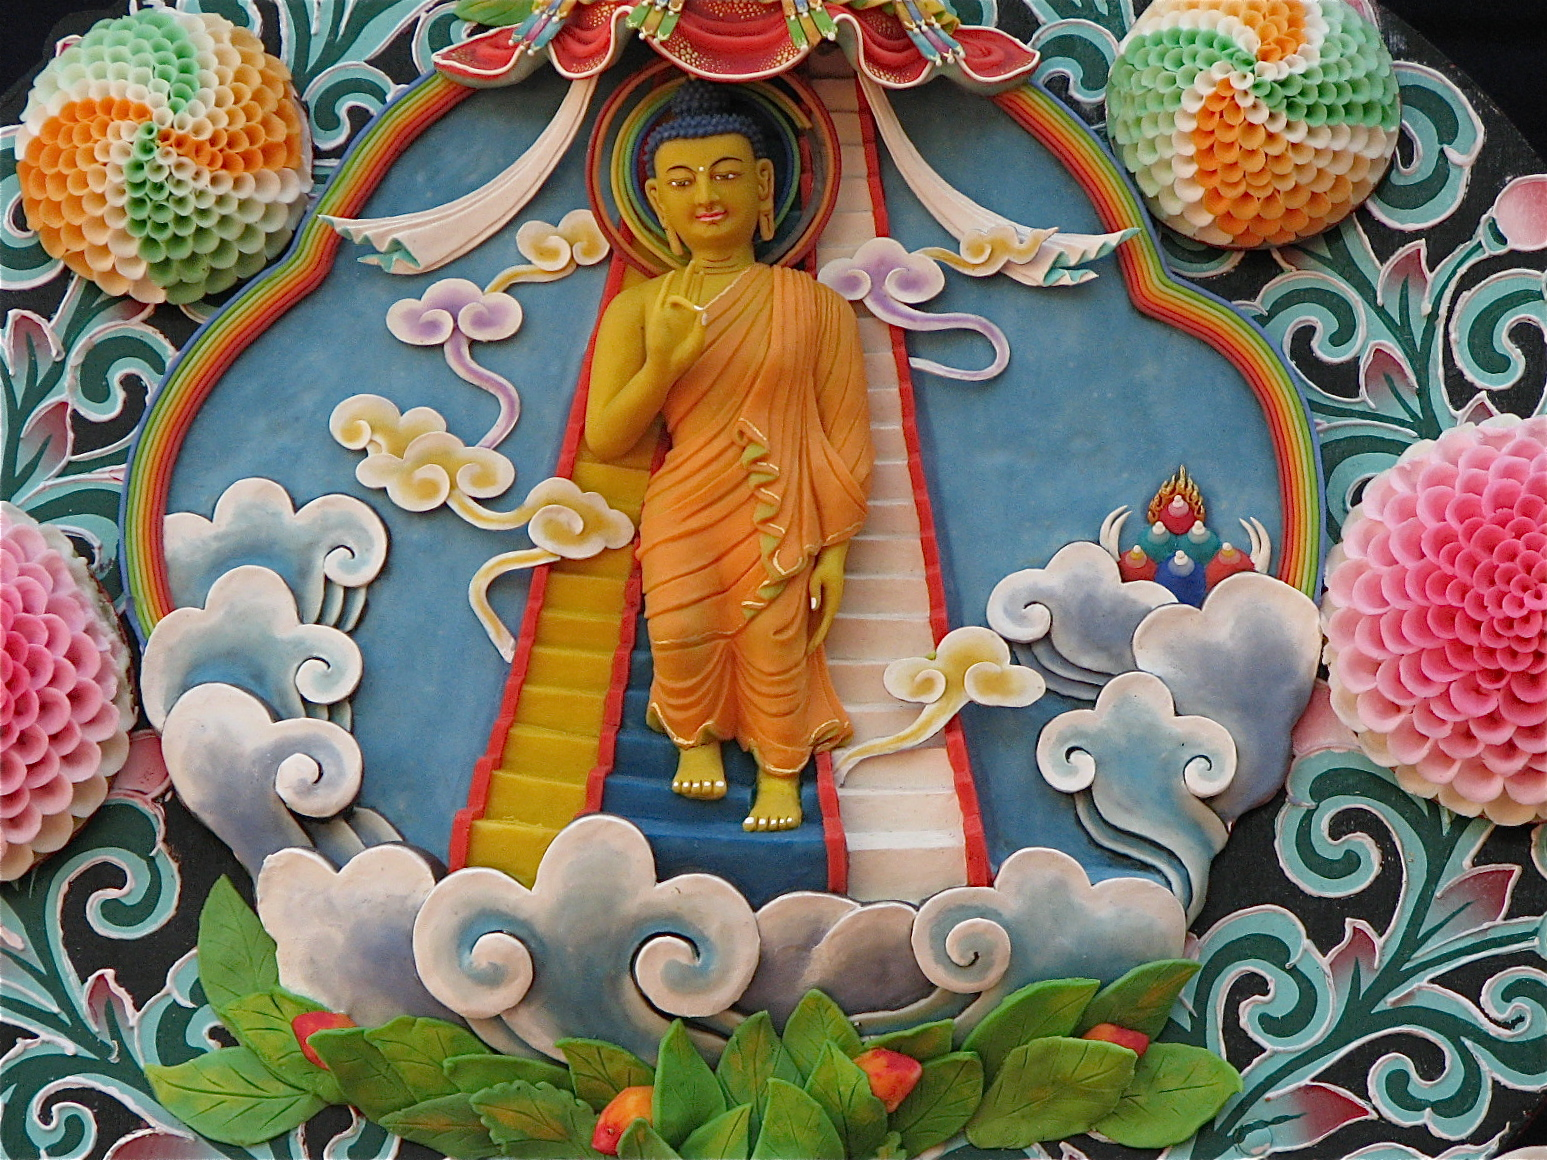 Descent of the Buddha from heaven